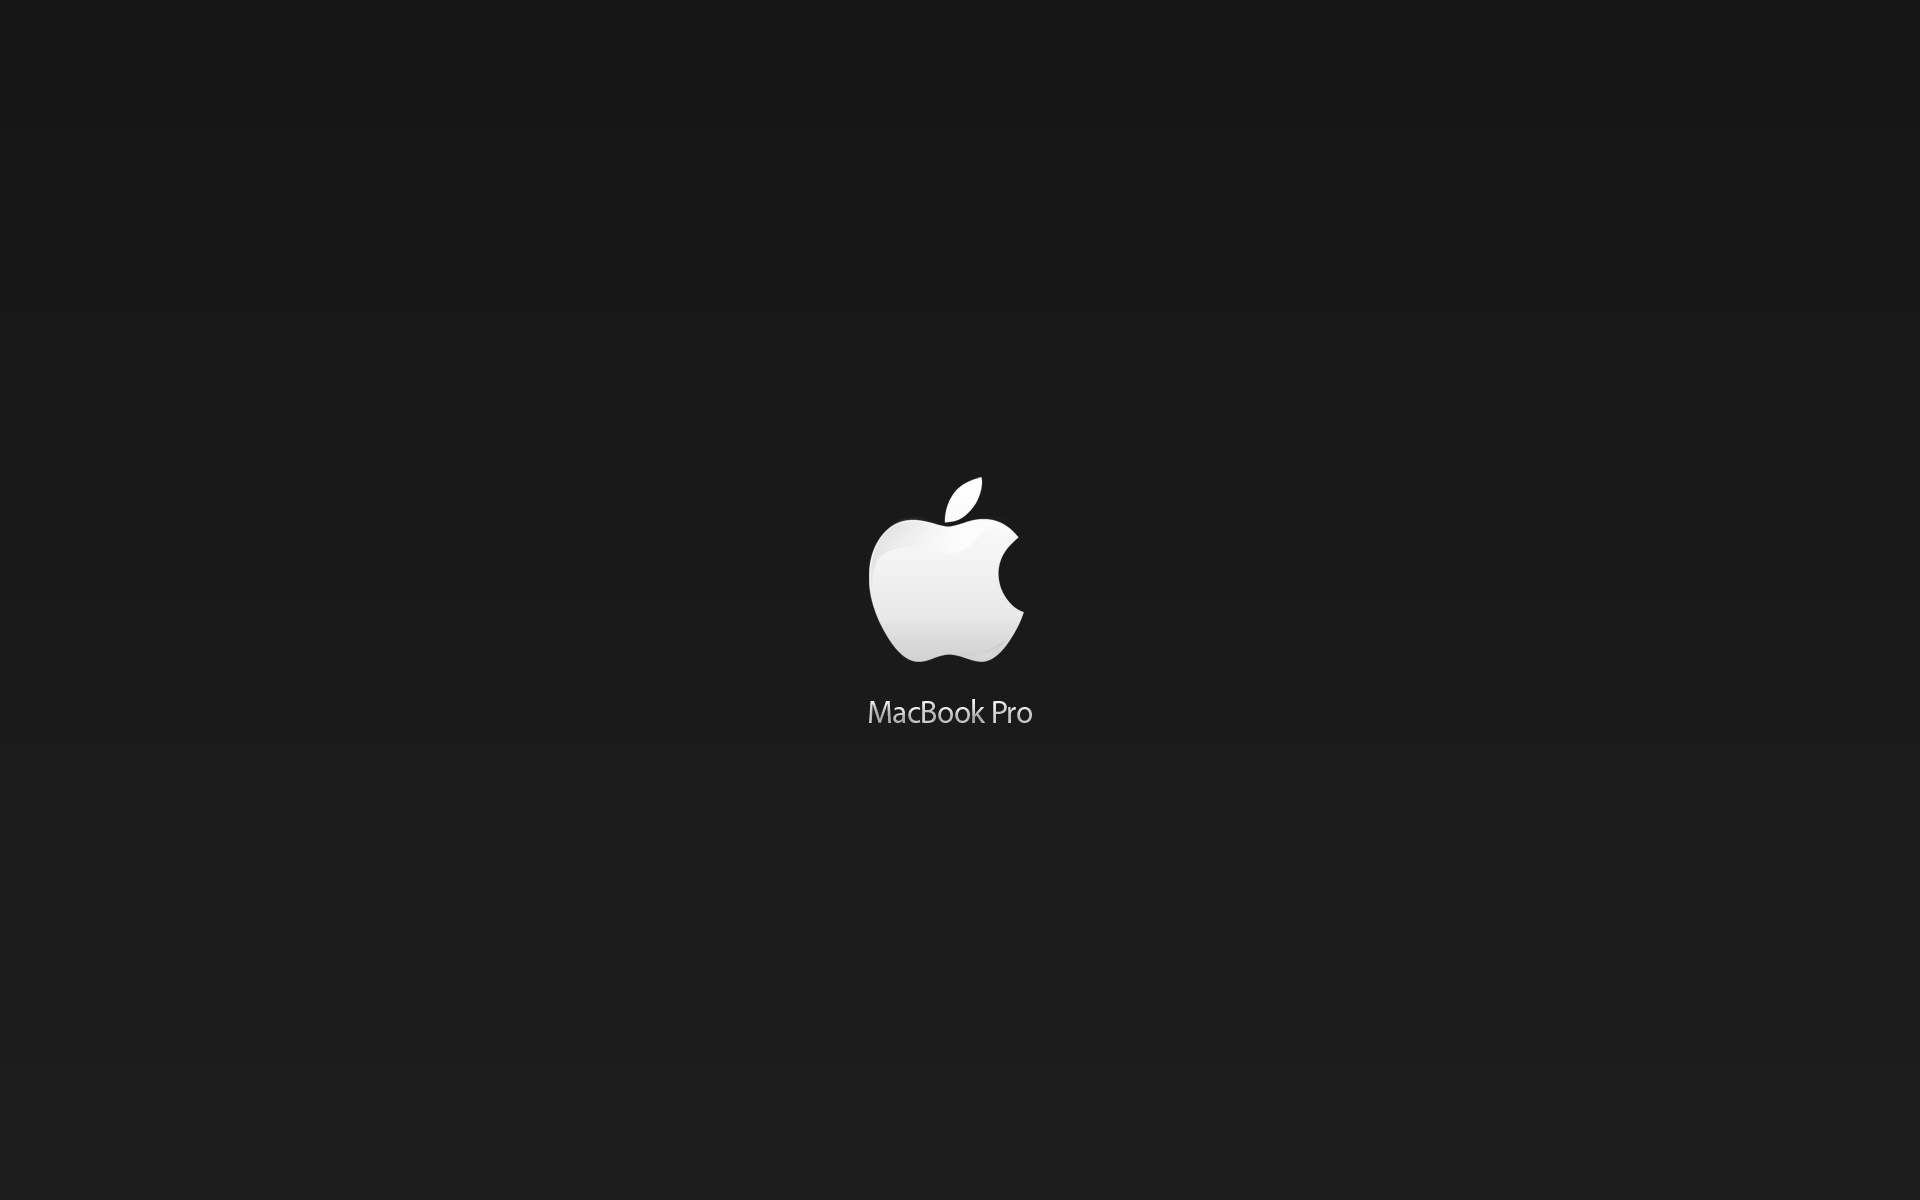 Macbook Pro Wallpaper 3418